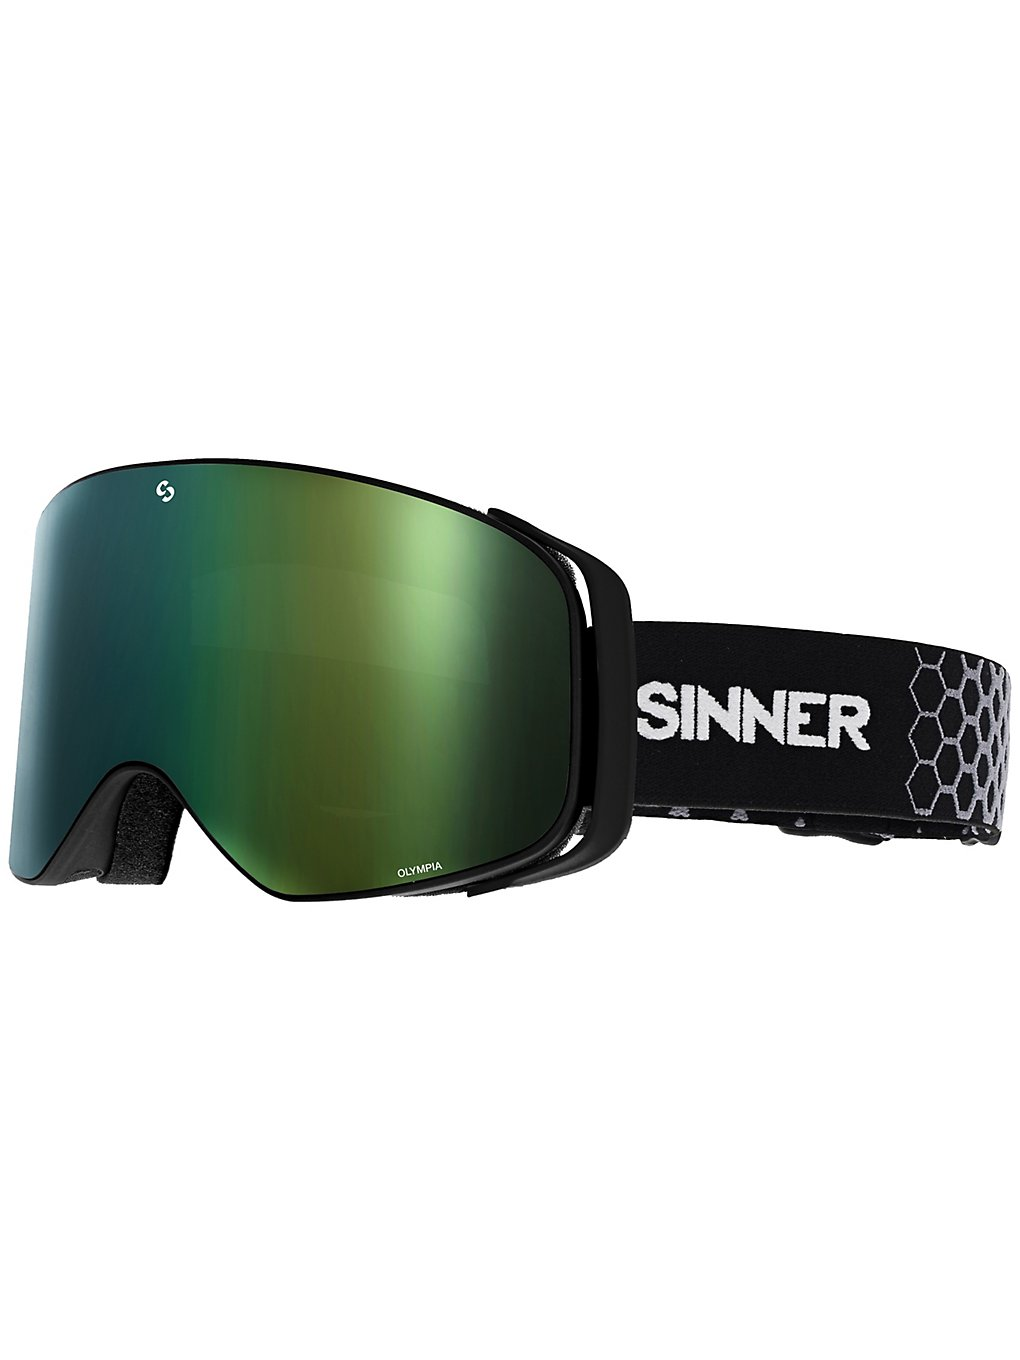 Sinner Olympia Mate Black/Gold double full orange mirror